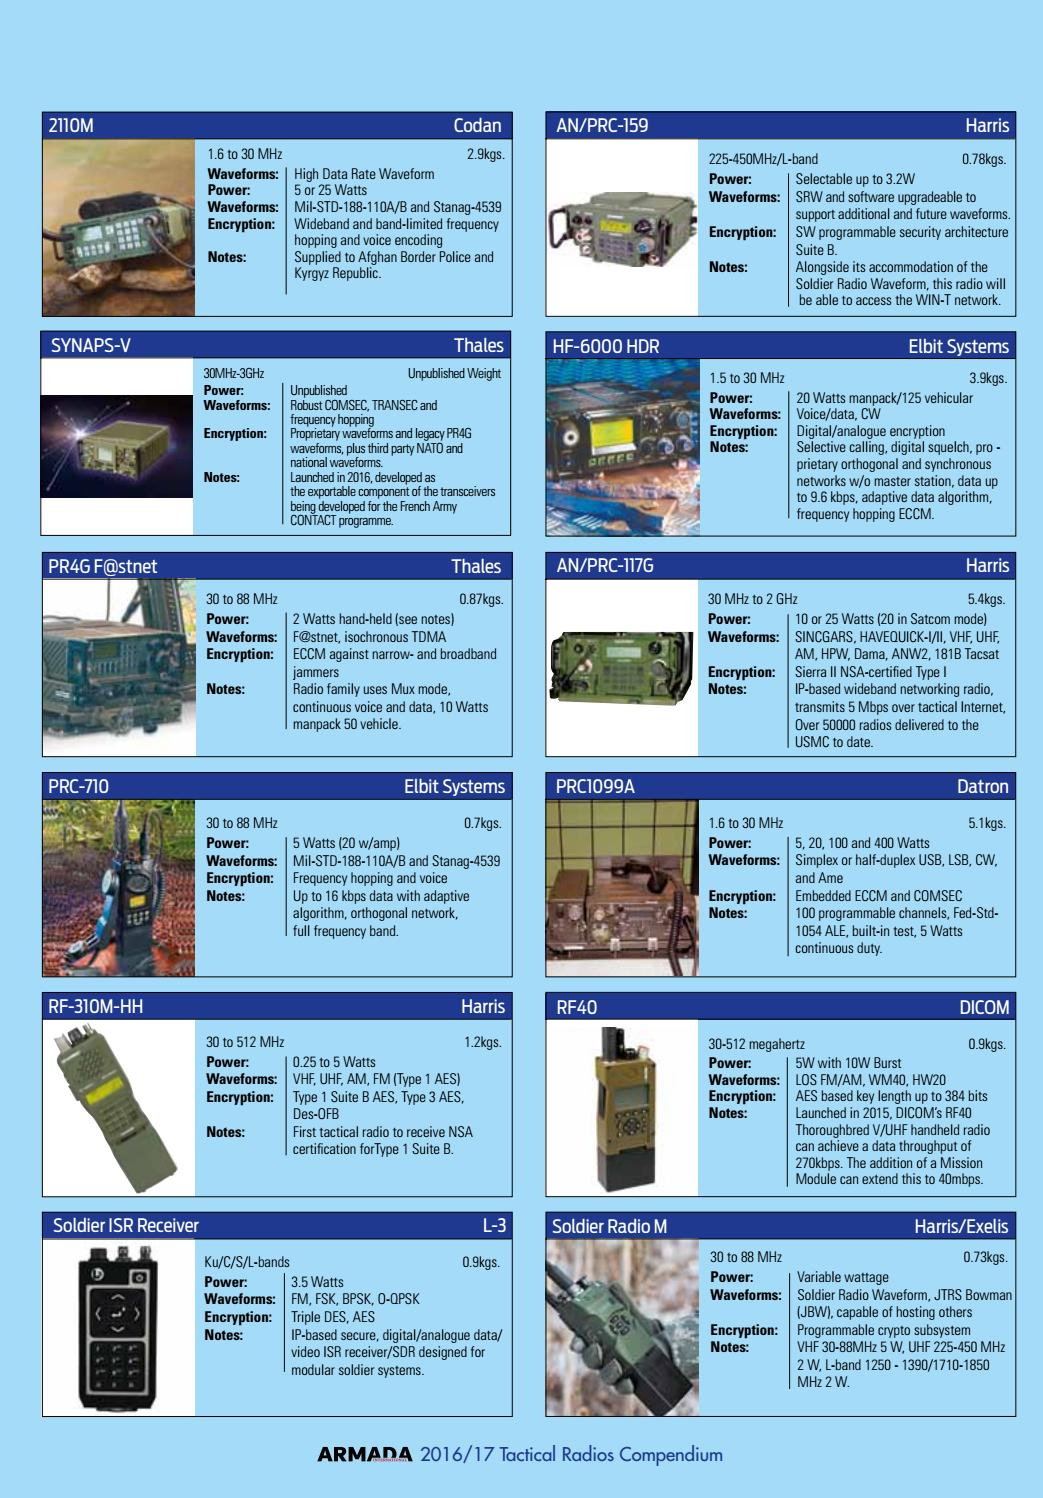 Compendium arm tactical radio octobernovember 2016 by armada compendium arm tactical radio octobernovember 2016 by armada international asian military review issuu 1betcityfo Gallery